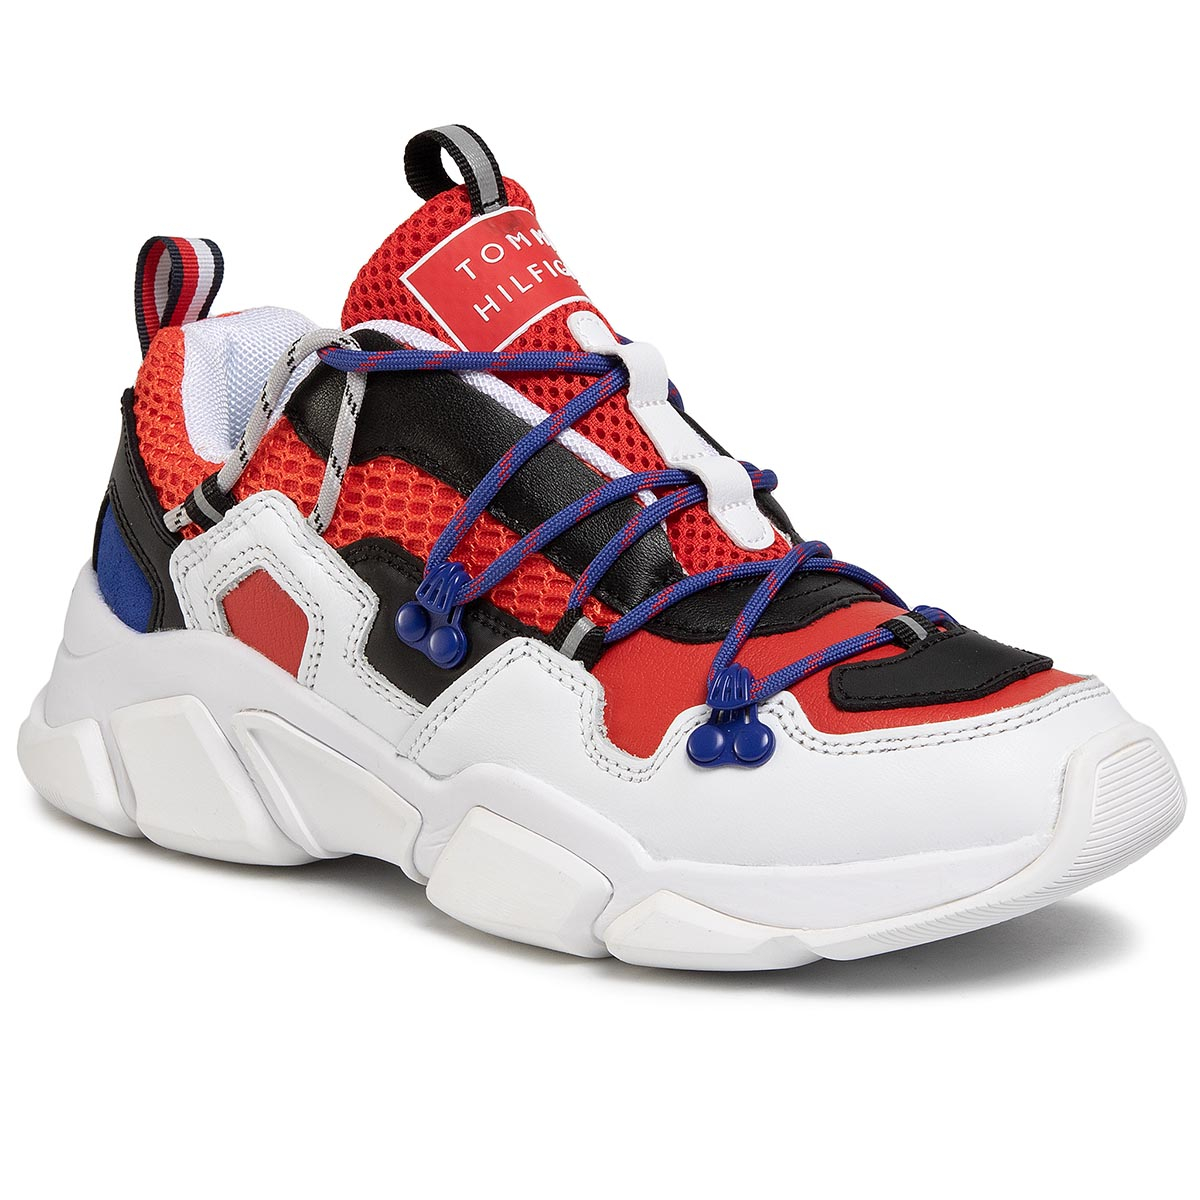 Sneakers TOMMY HILFIGER - City Voyager Chunky Sneaker FW0FW04610 Rwb 0K5 New